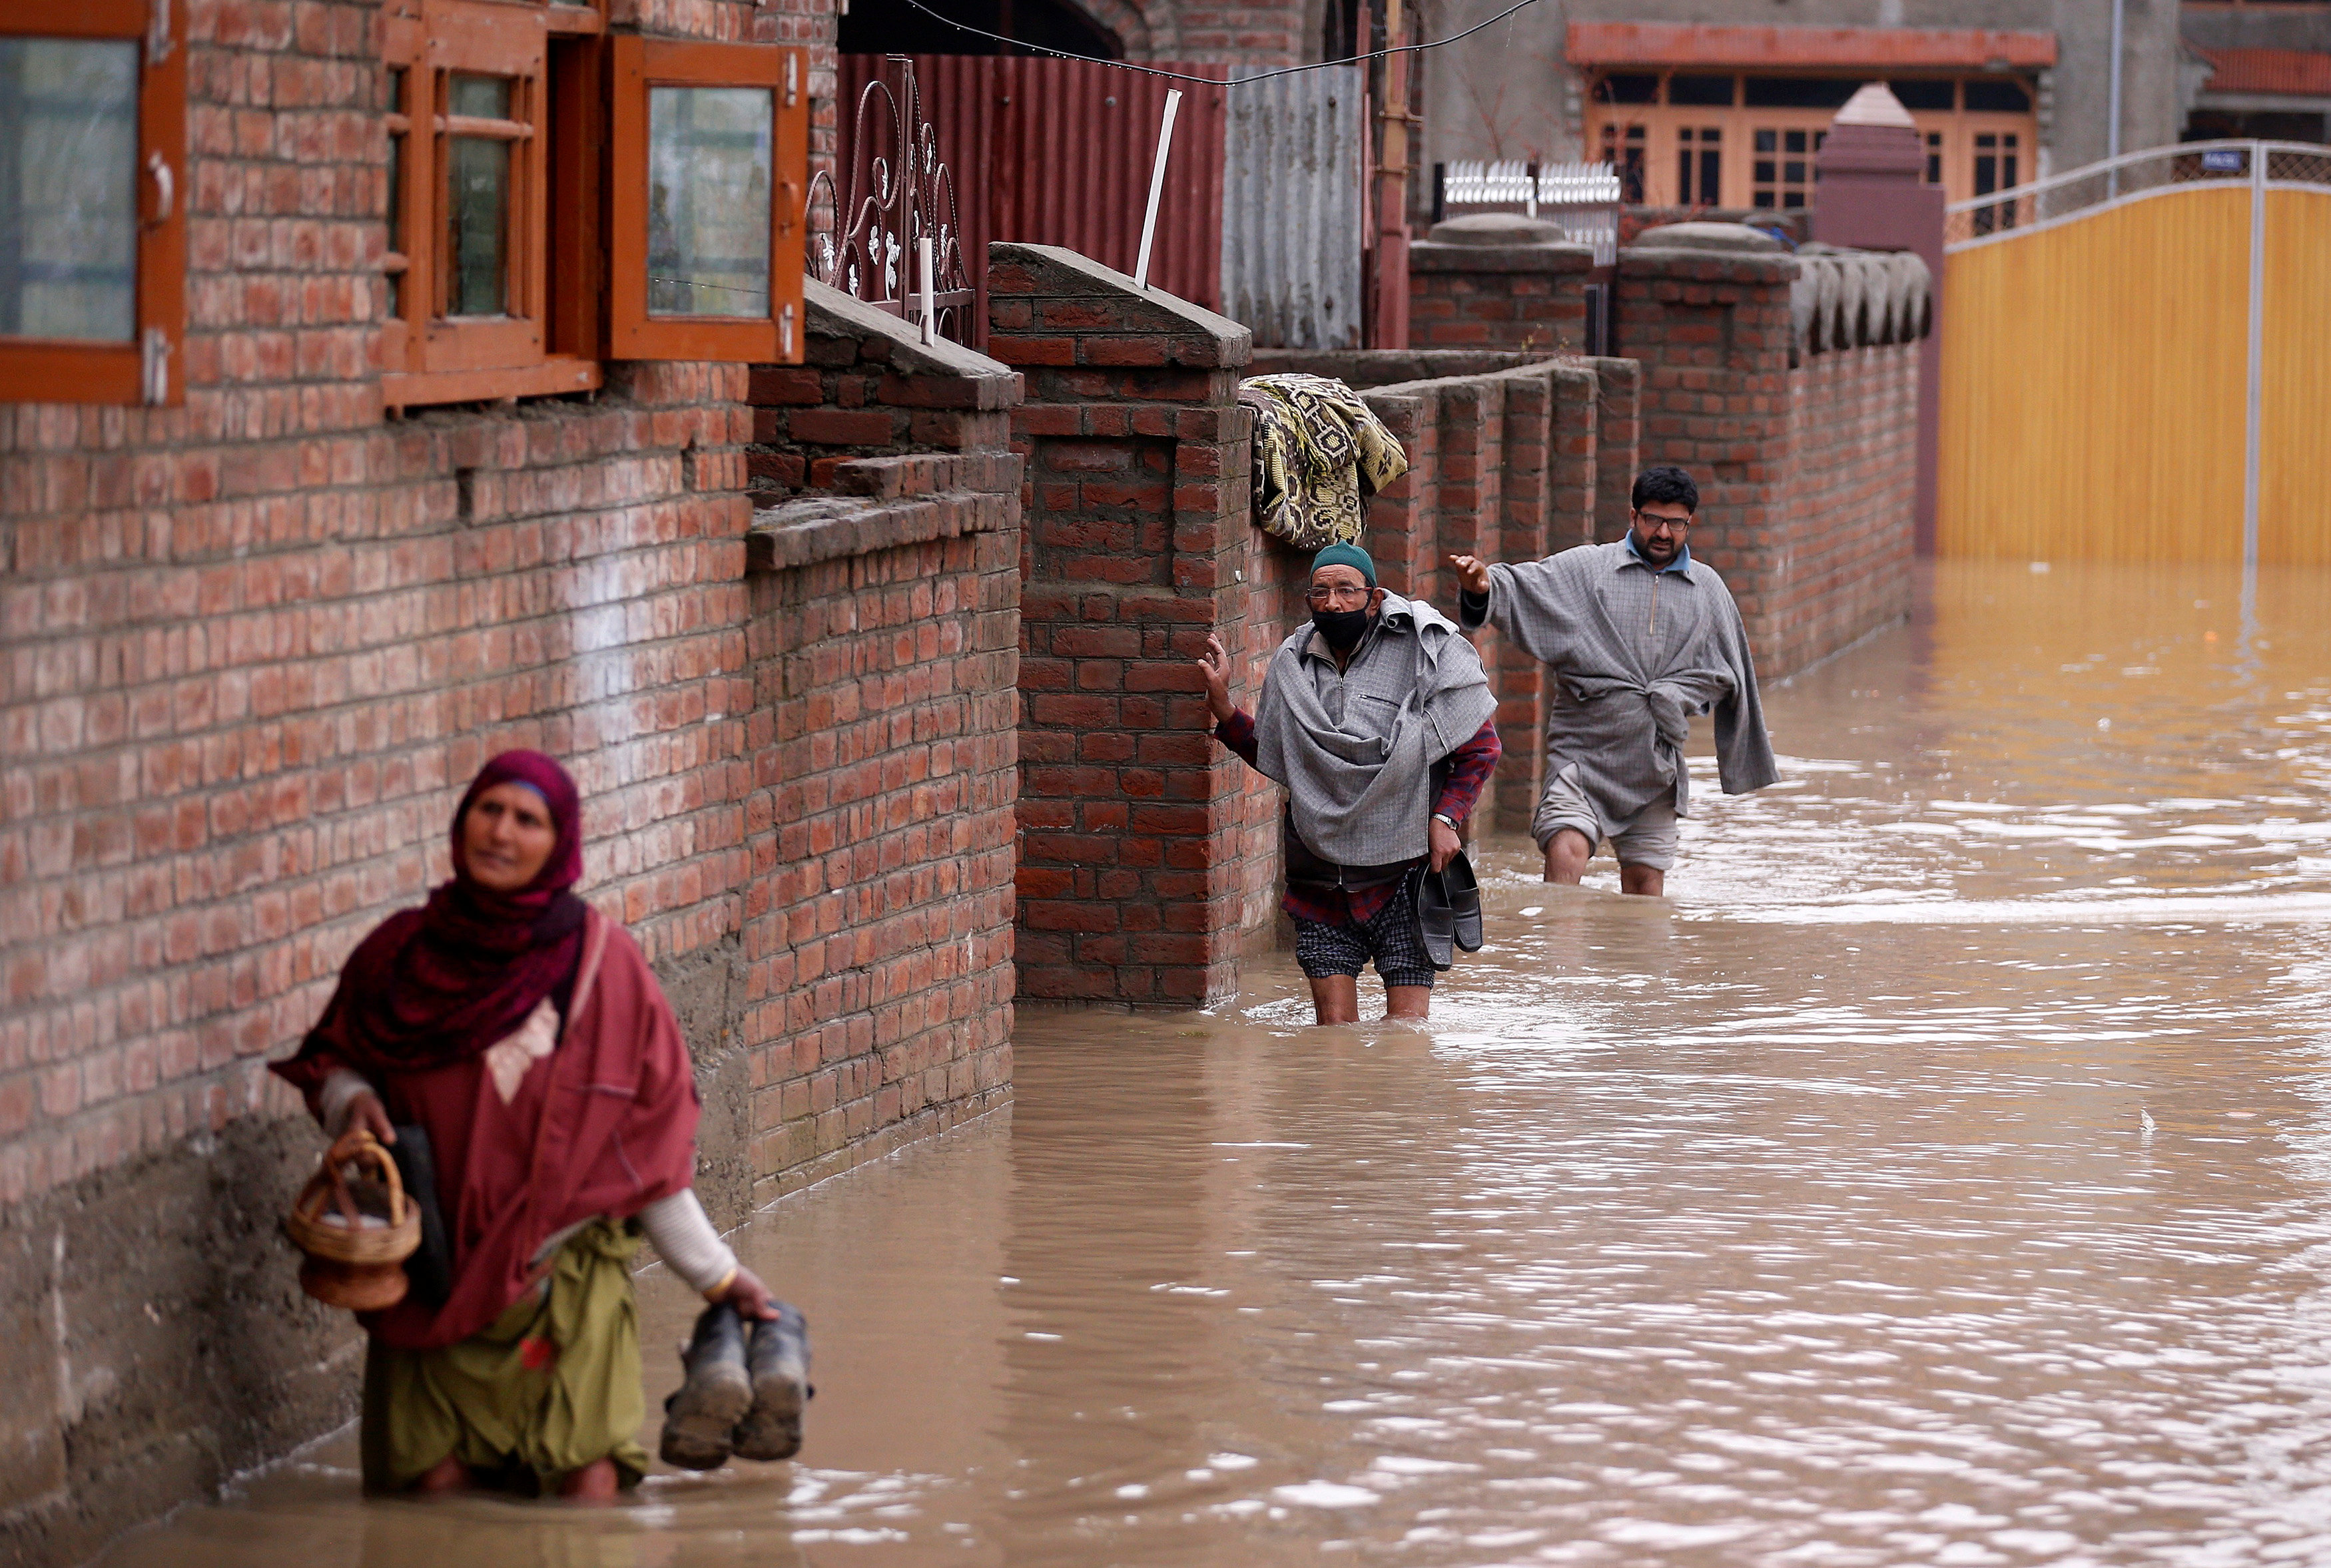 People wade through a flooded street after incessant rains in Srinagar April 7, 2017. REUTERS/Danish Ismail